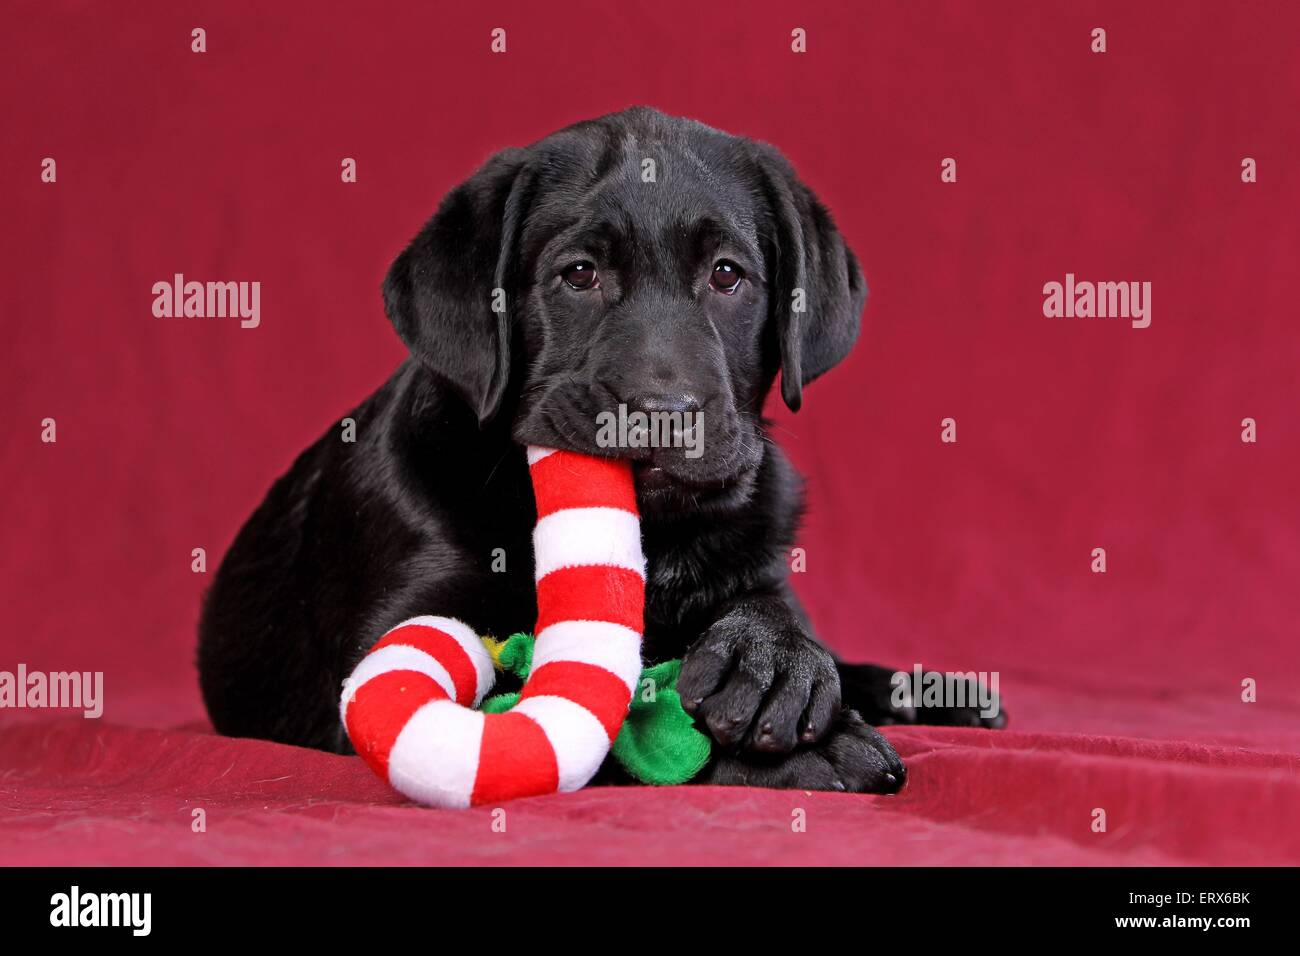 Black Labrador Puppy Christmas Fotos E Imagenes De Stock Alamy